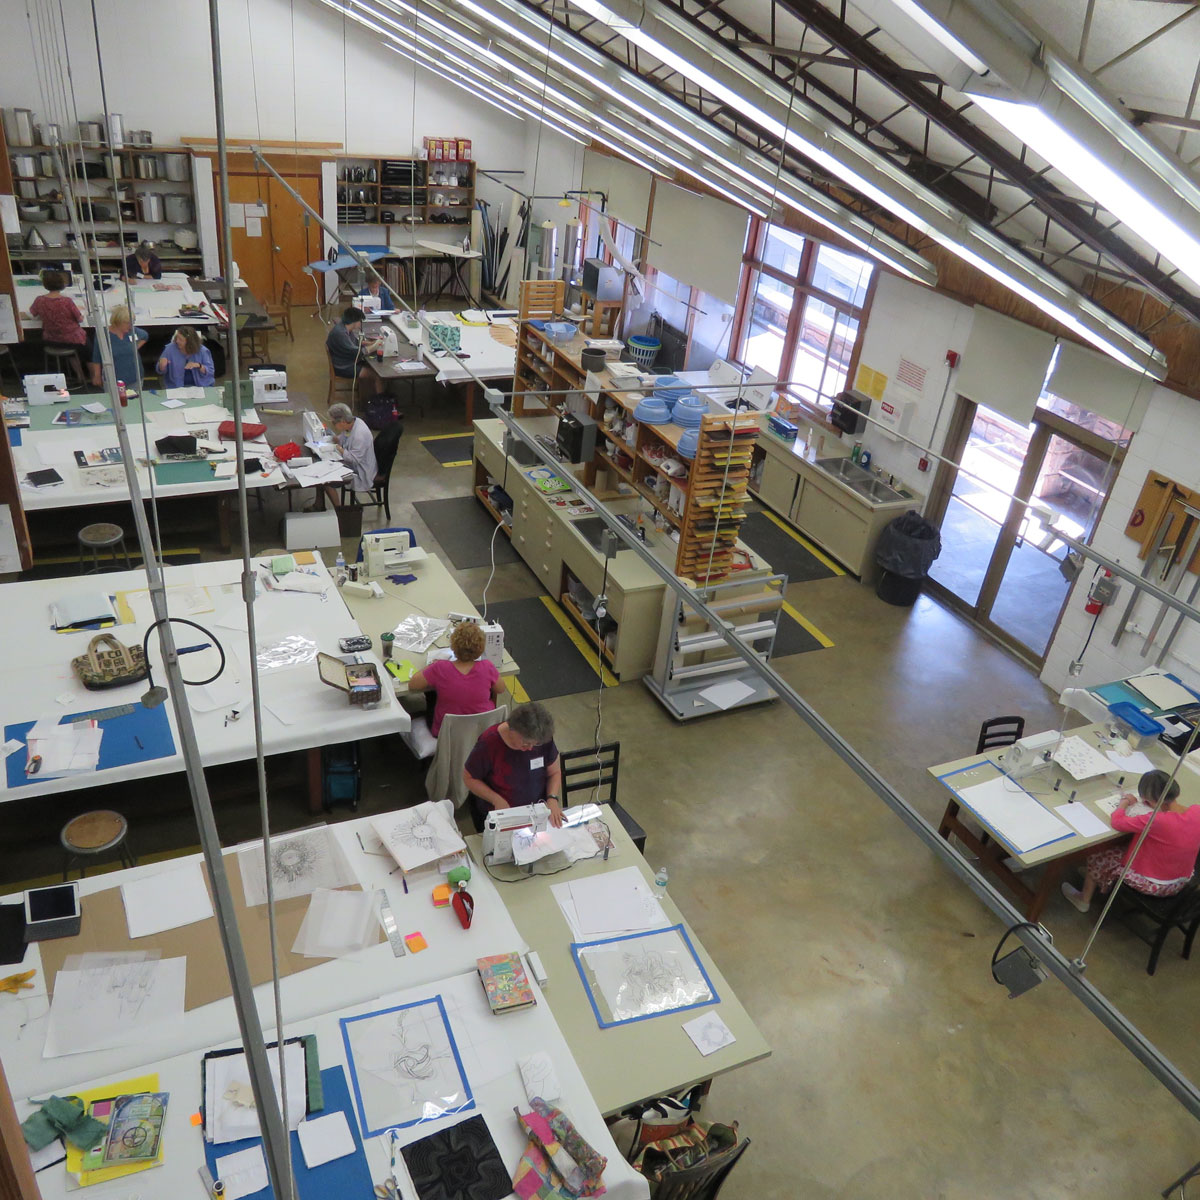 The workshops at Arrowmont allow for everyone to spread out and stretch their creative minds.